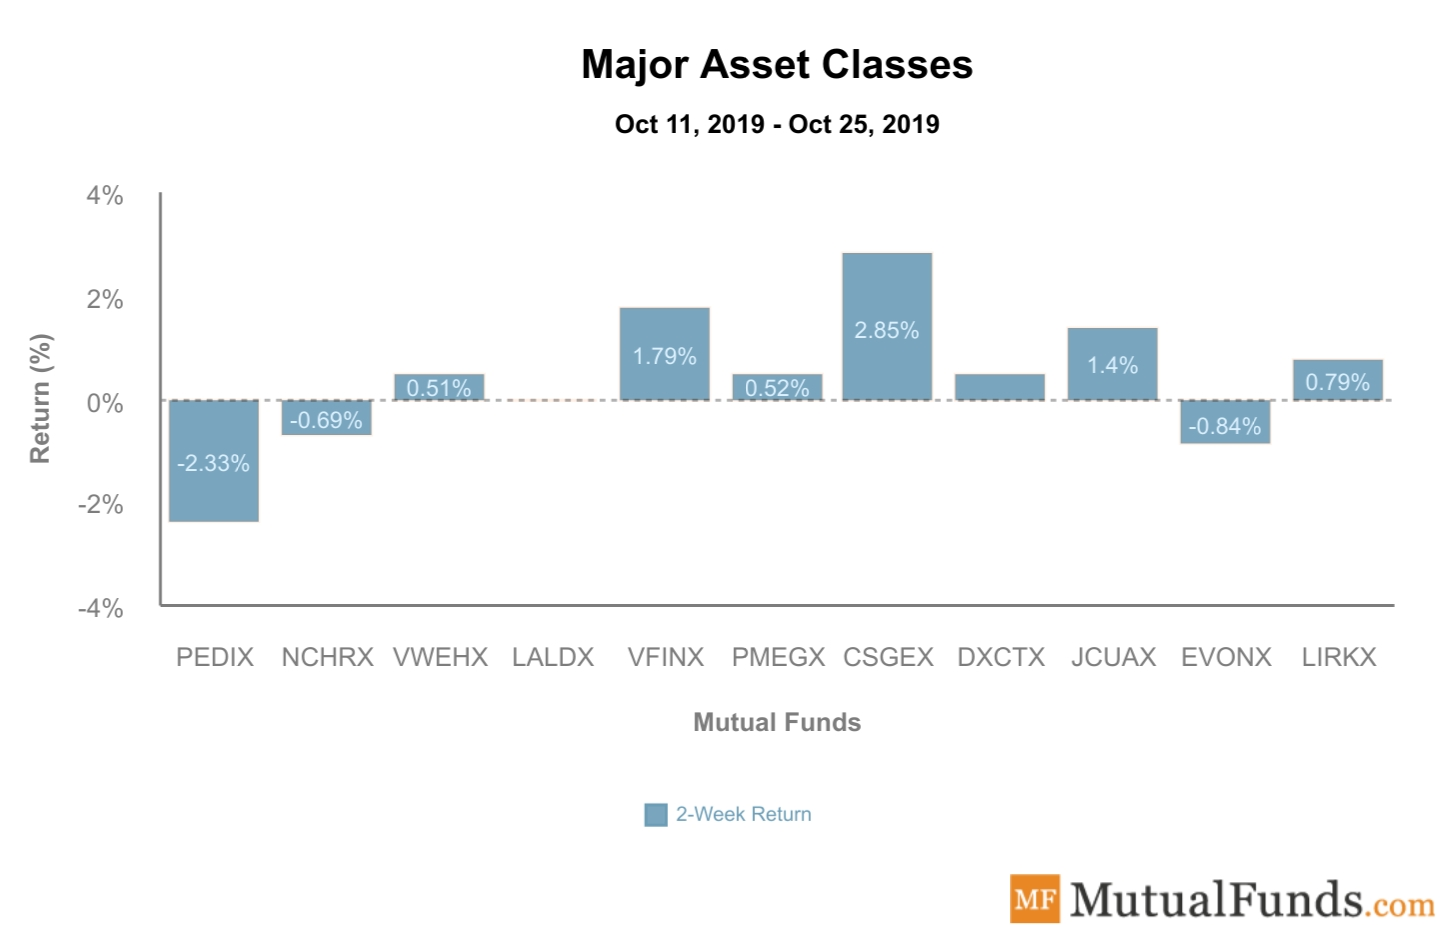 Major Asset Classes Performance Oct 29, 2019